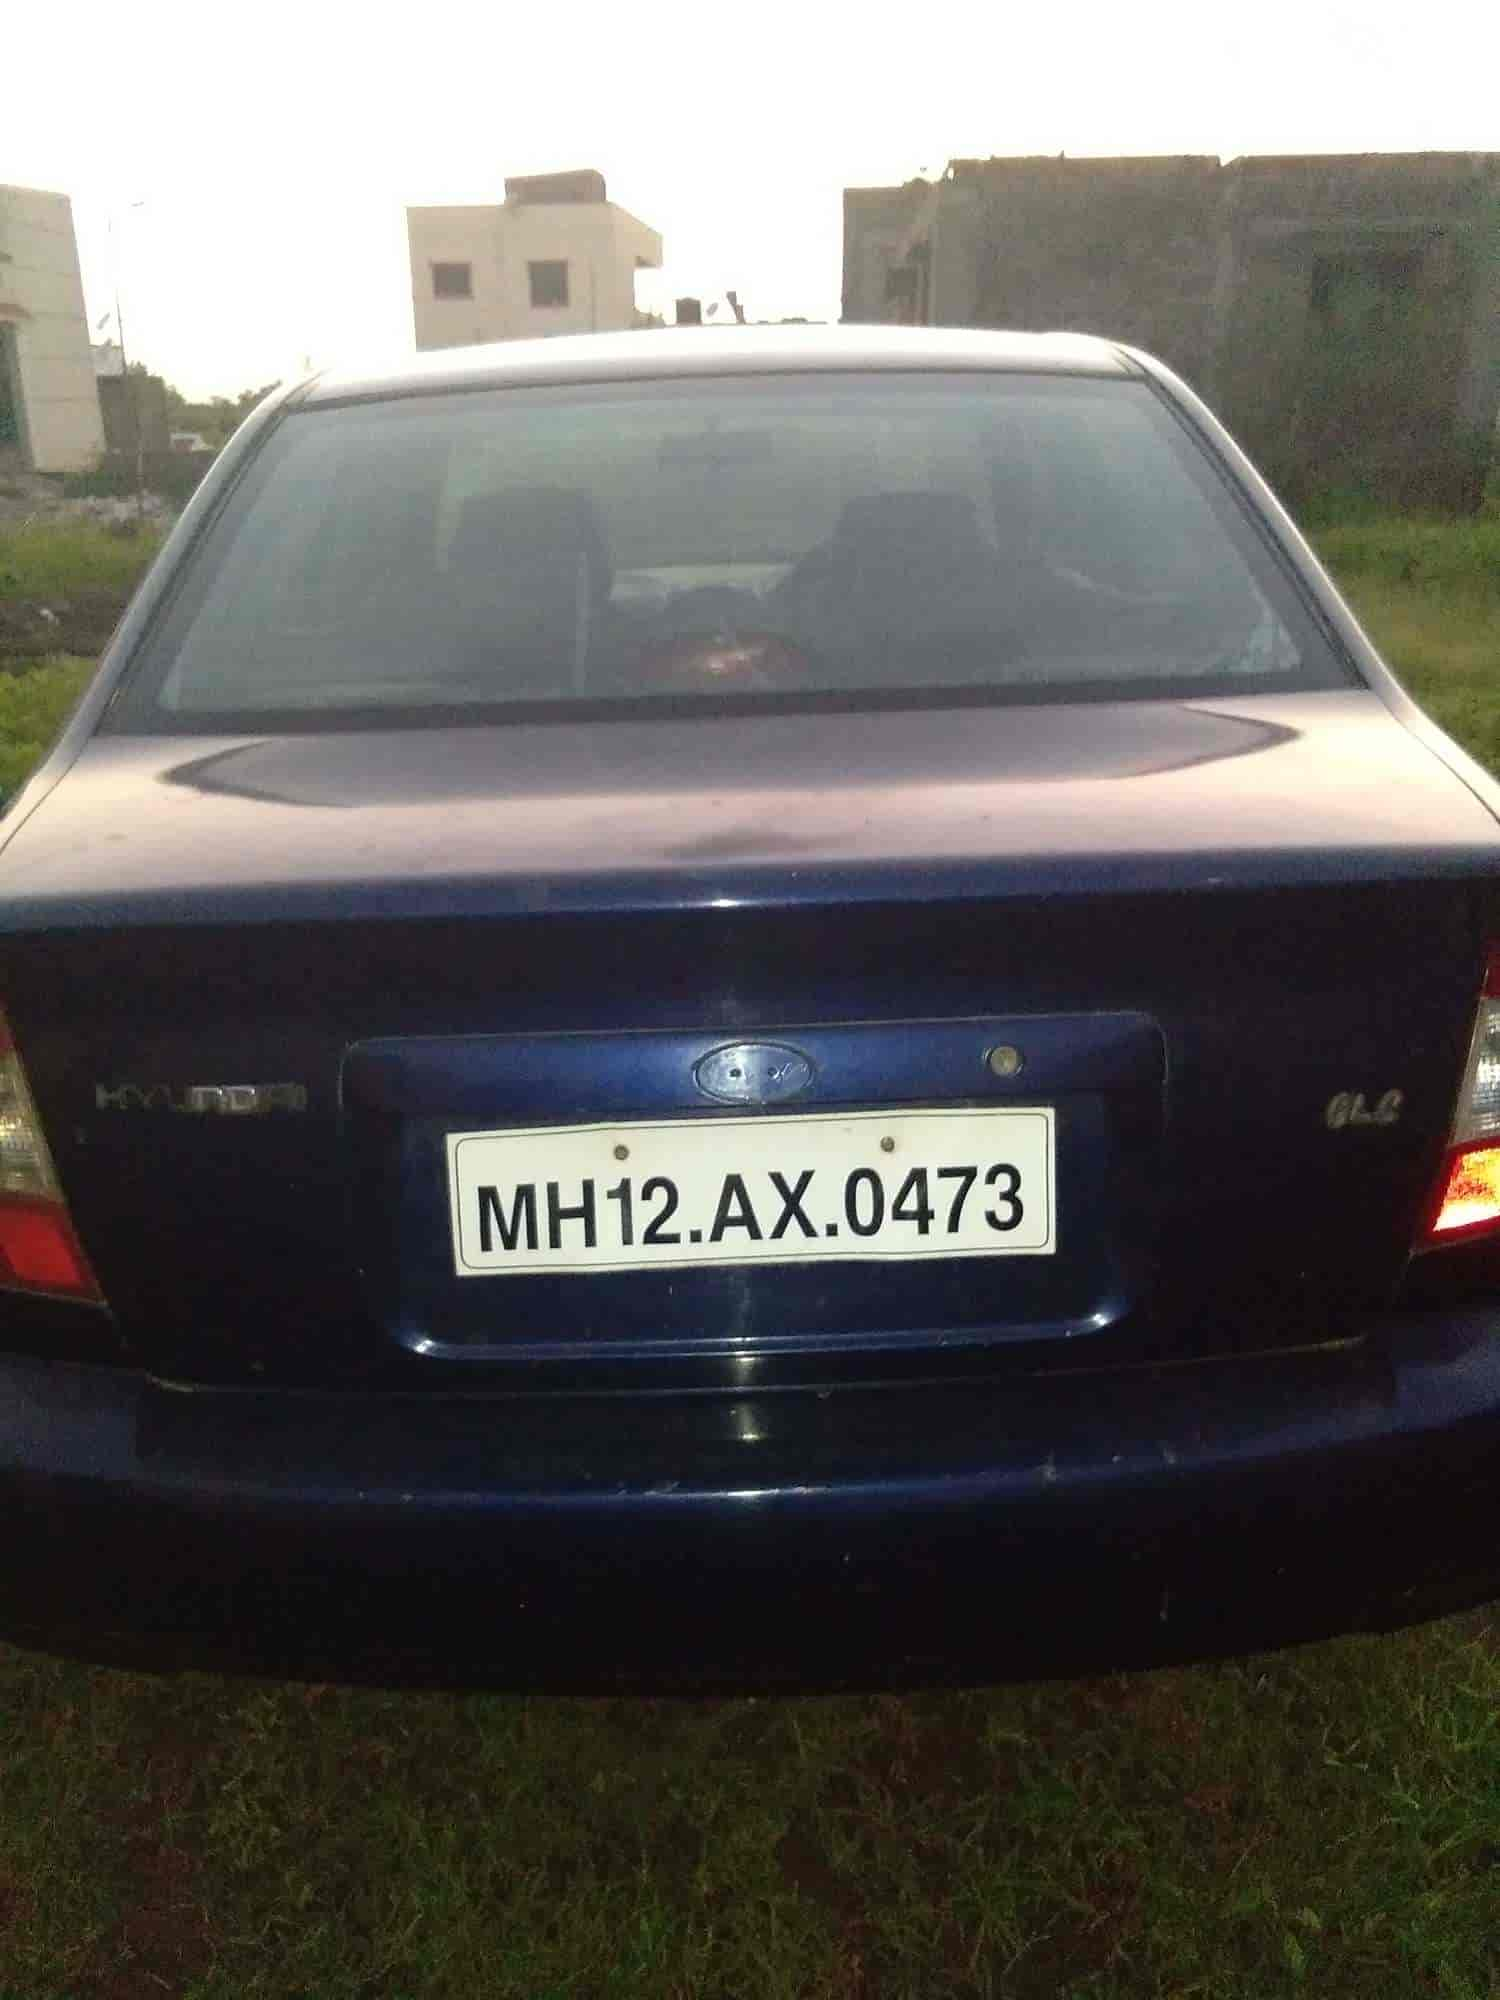 Olx Cash My Car, Kharadi - Second Hand Car Buyers in Pune